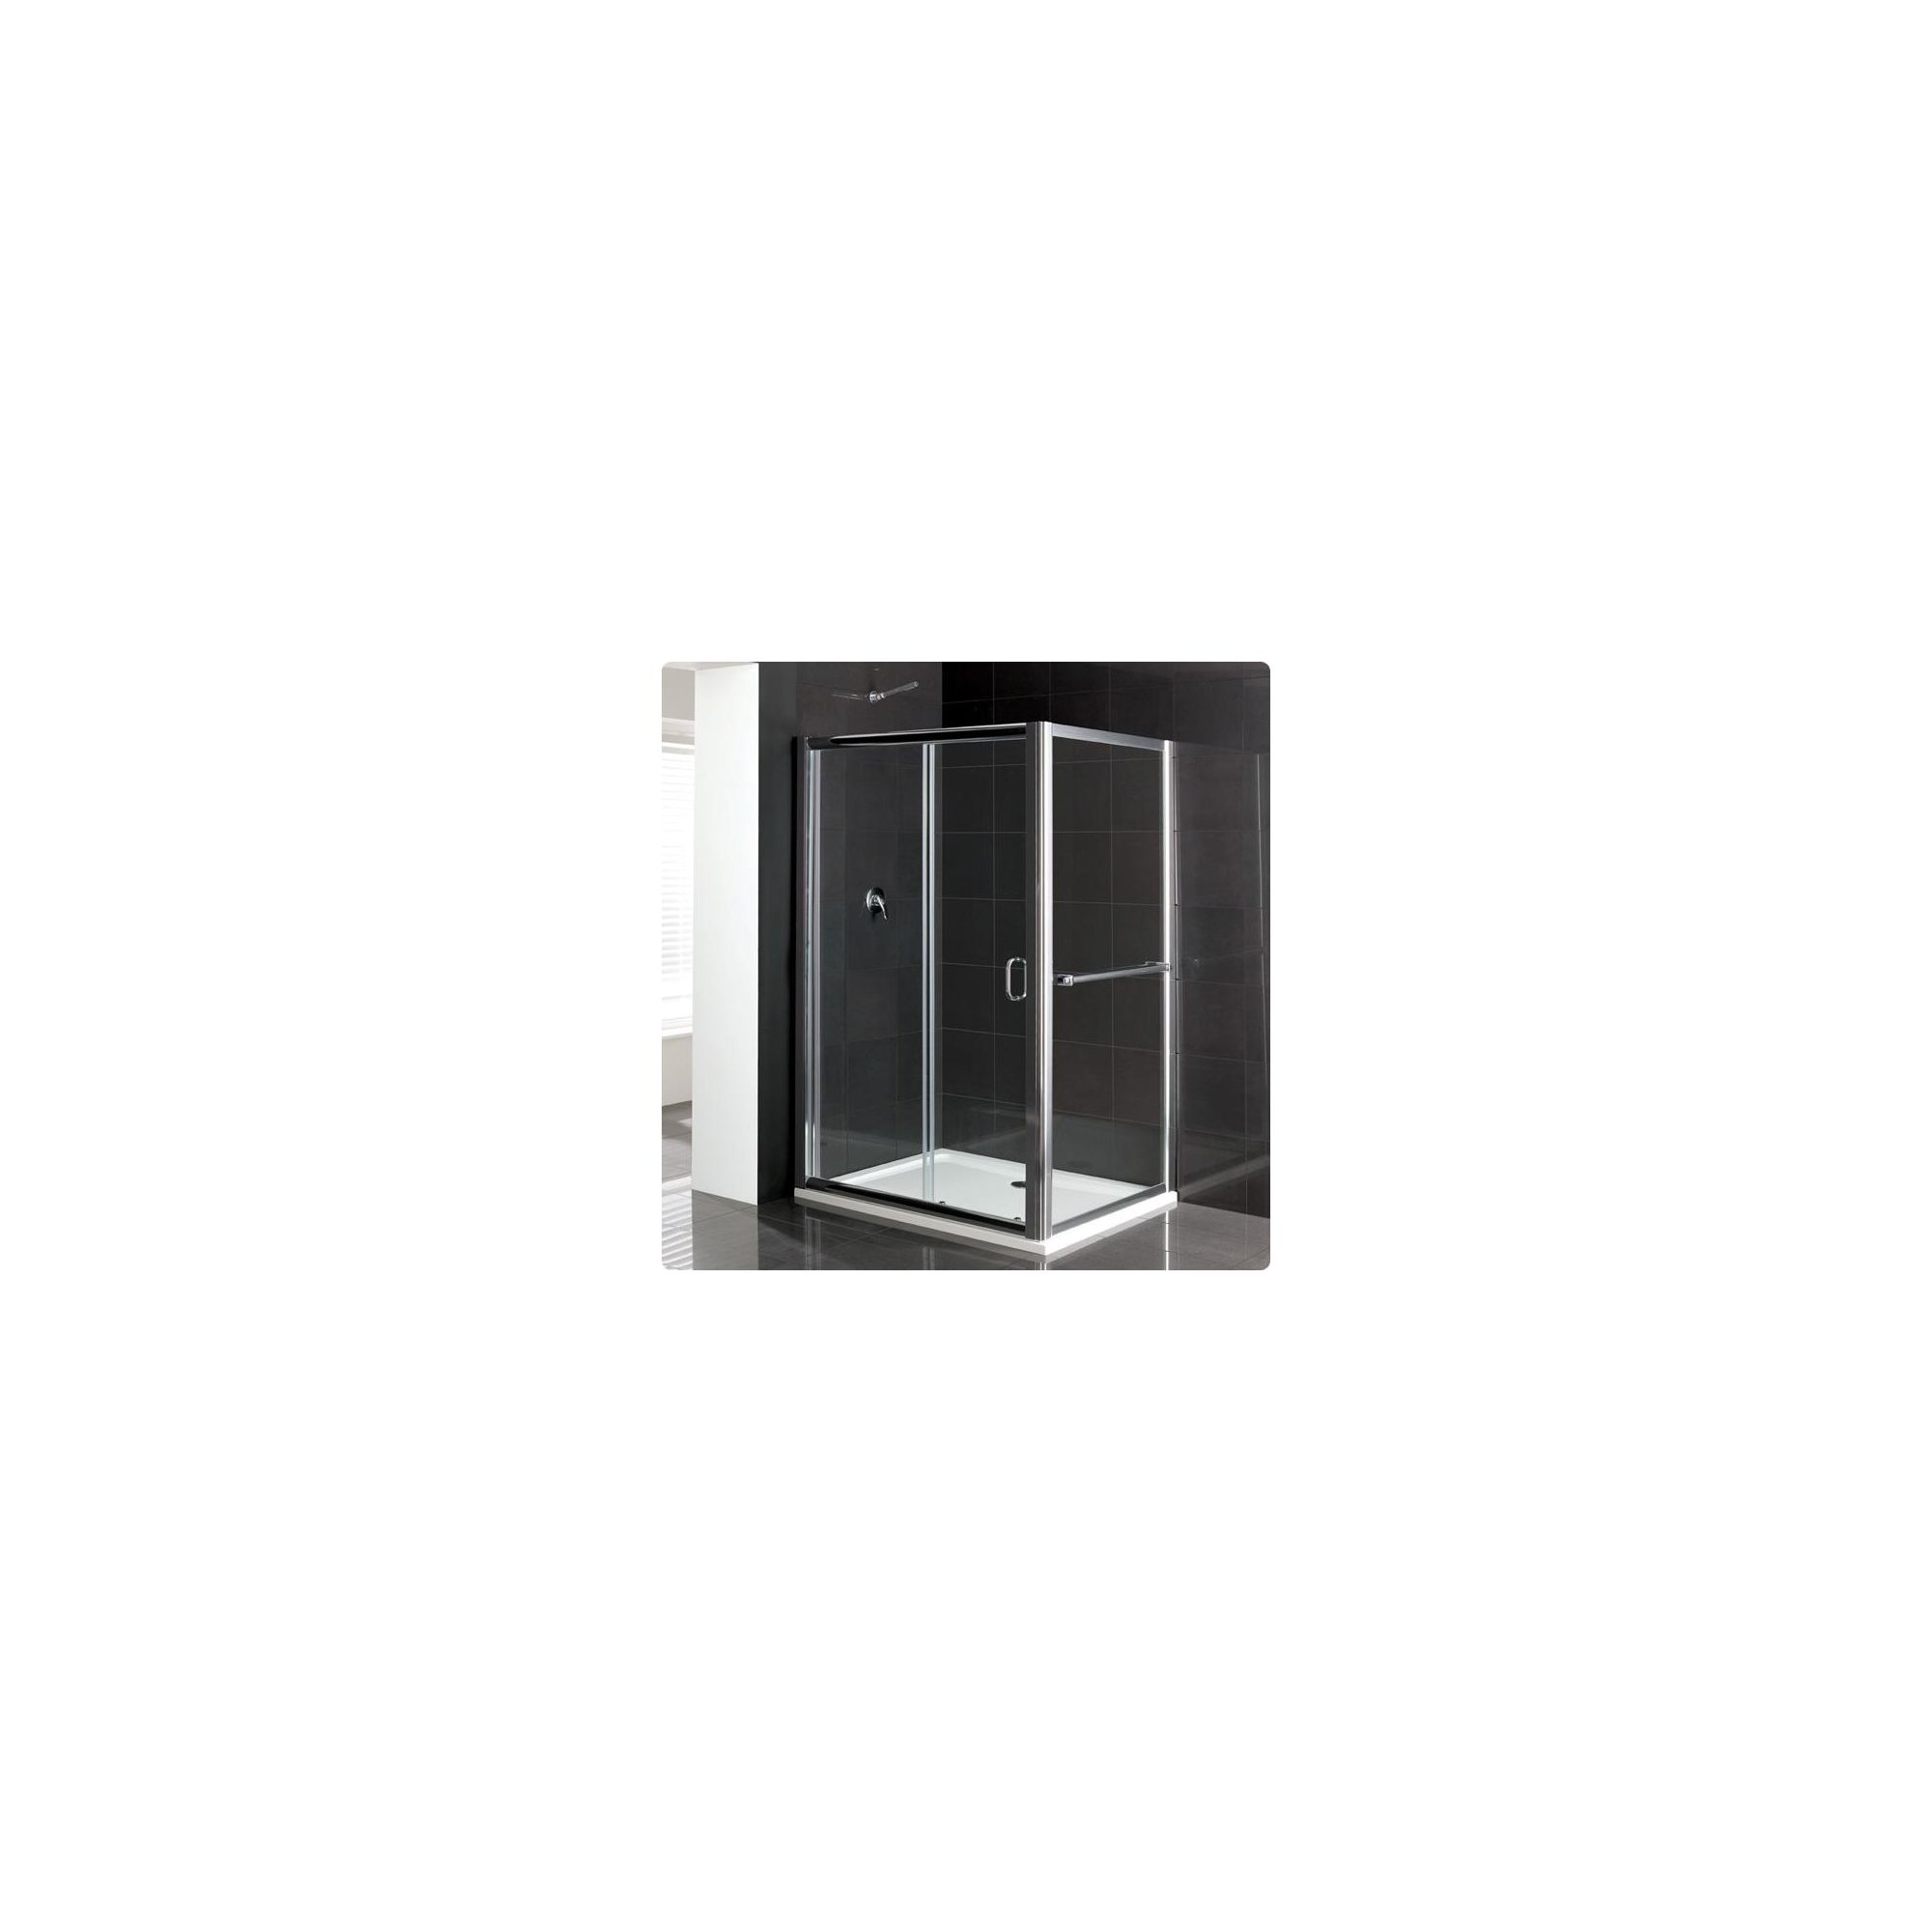 Duchy Elite Silver Sliding Door Shower Enclosure, 1400mm x 760mm, Standard Tray, 6mm Glass at Tesco Direct